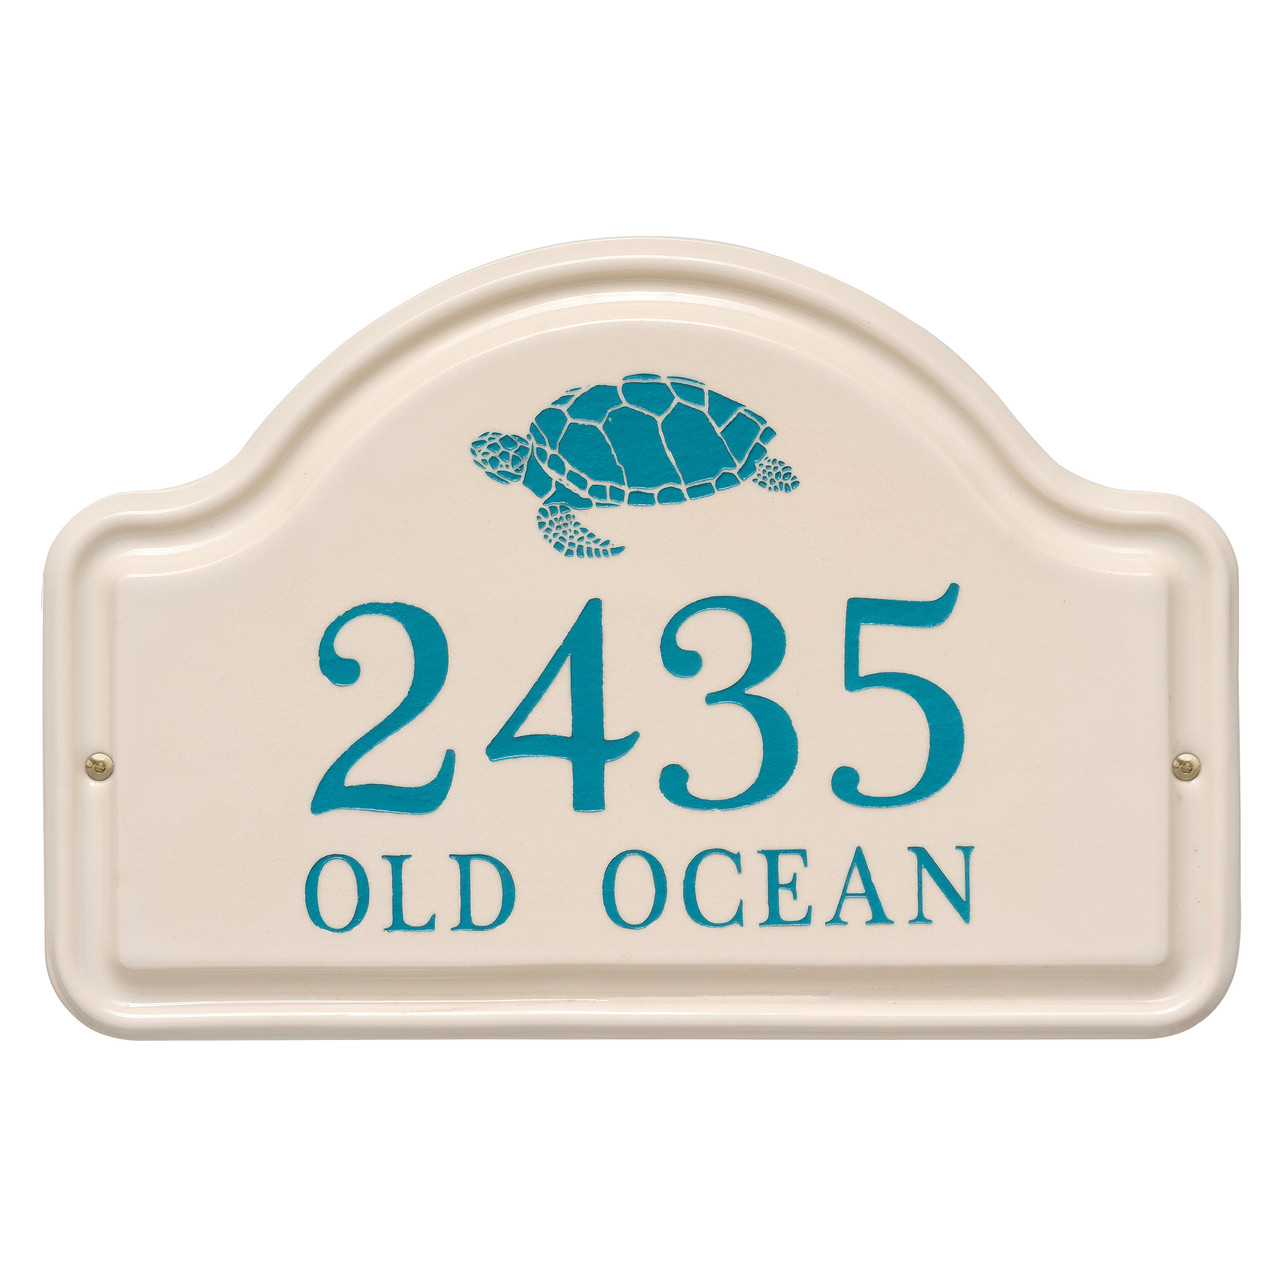 Personalized Arched Ceramic Address Plaque with Turtle - Two Lines